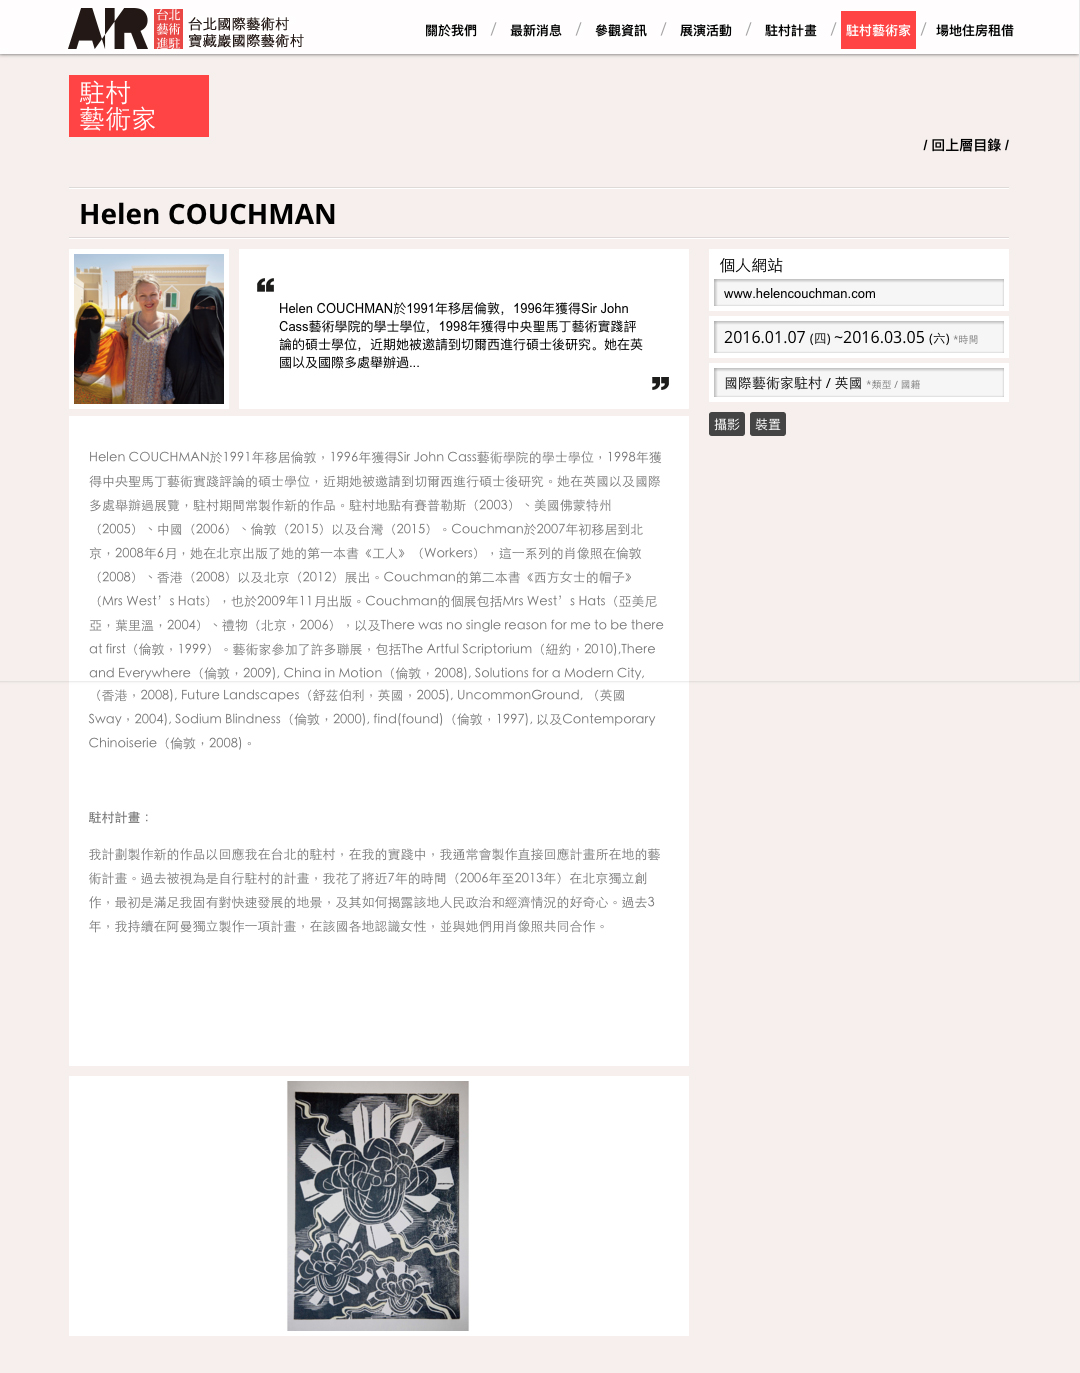 TAV website profile - mandarin